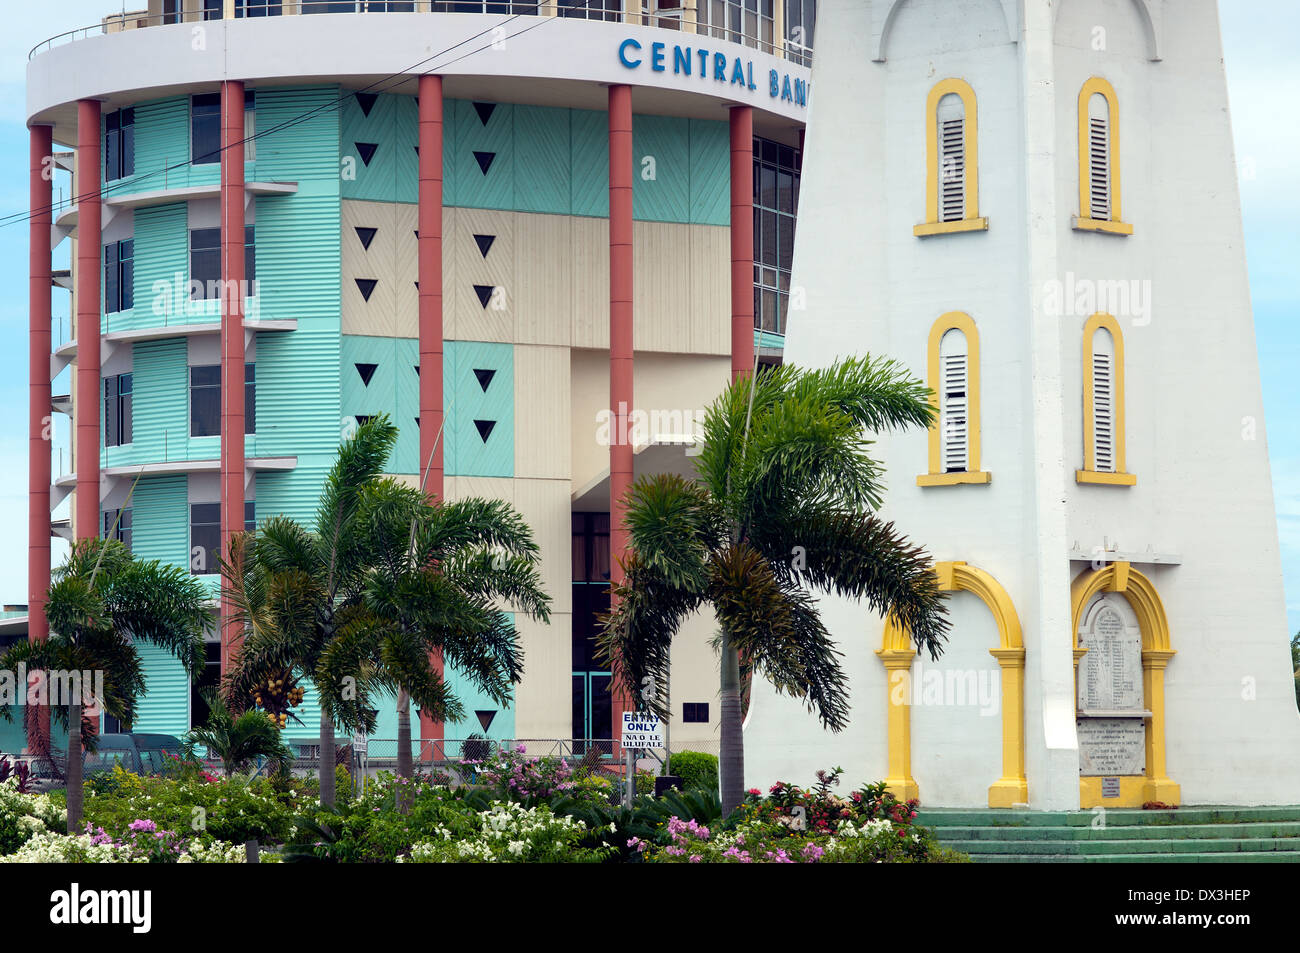 clocktower and Central Bank of Samoa, Apia, Samoa - Stock Image